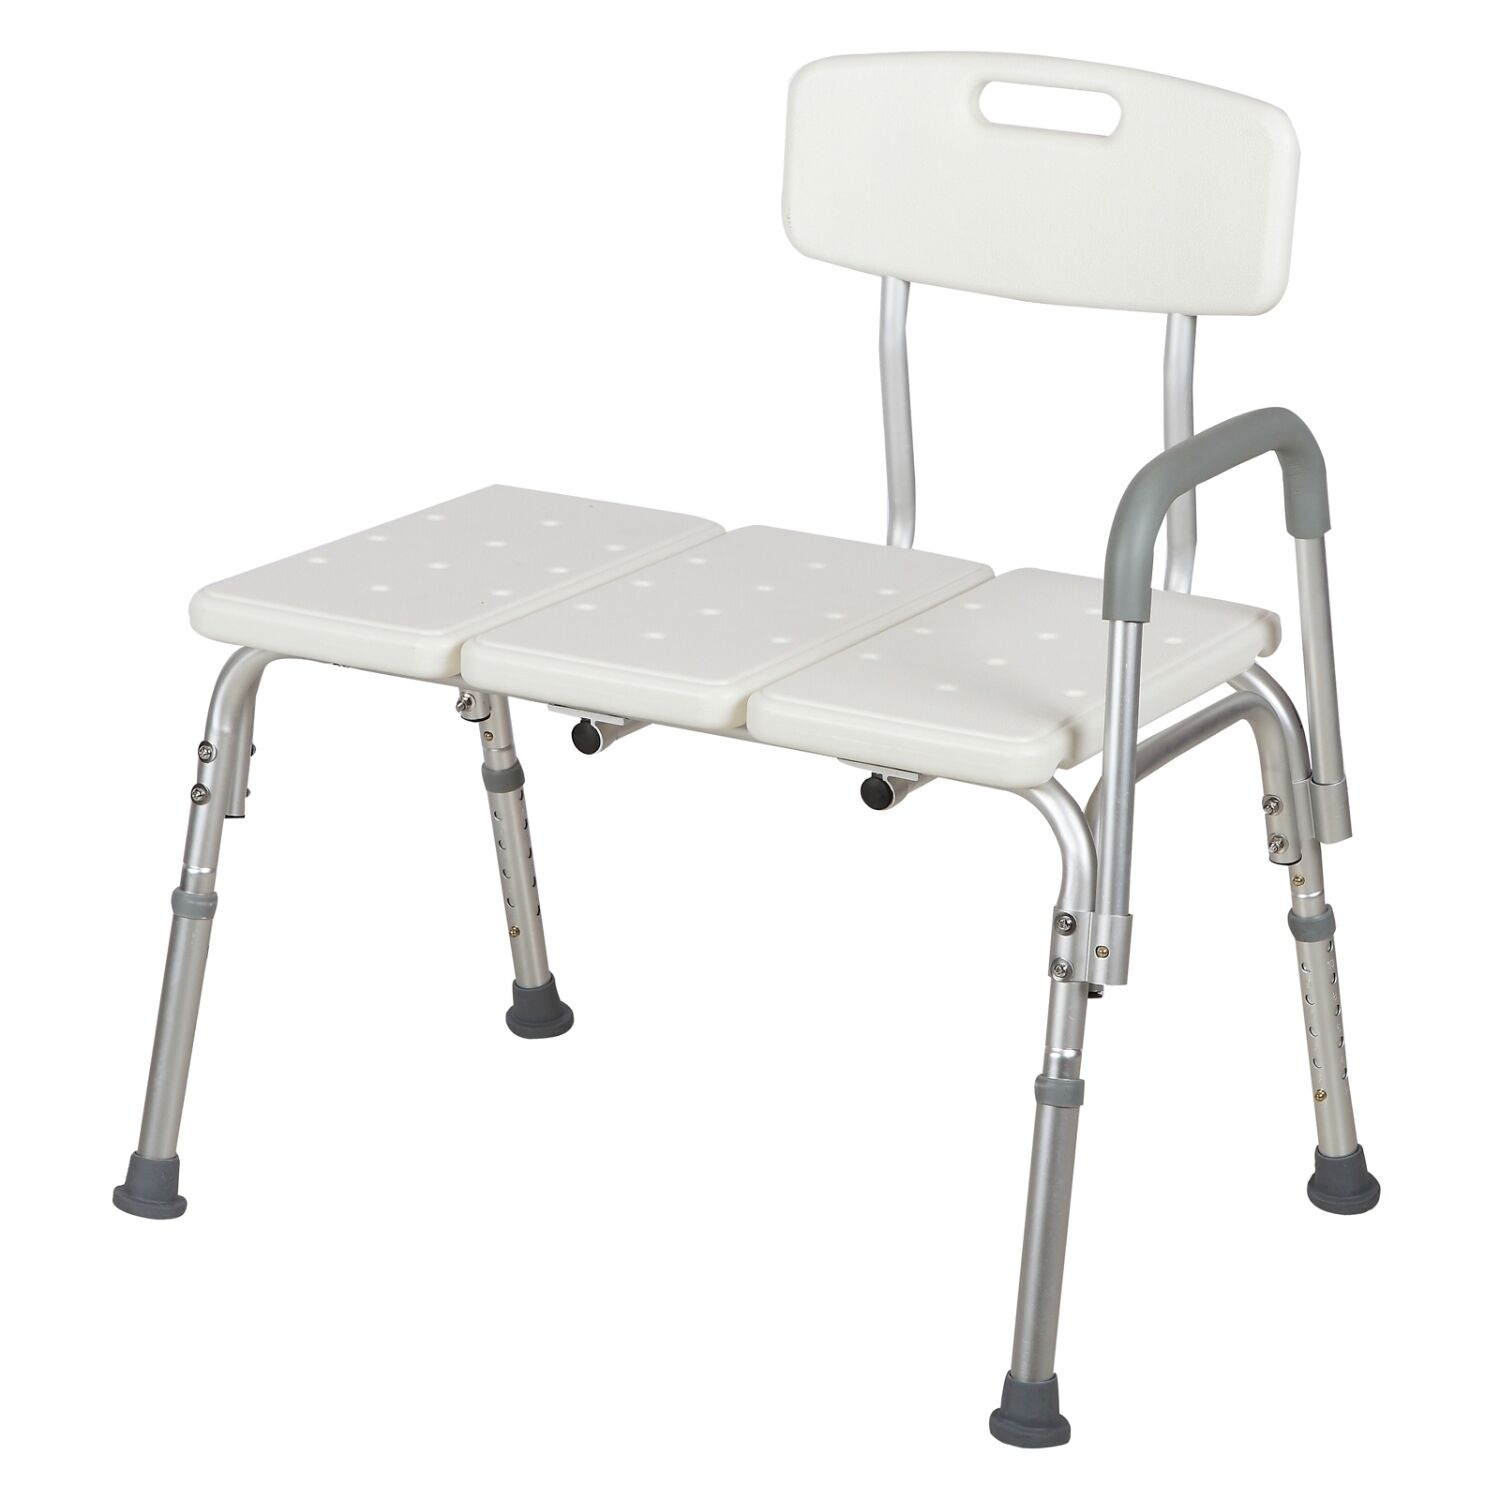 Adjustable 10 Height Medical Shower Chair Bath Tub Bench Stool Seat ...